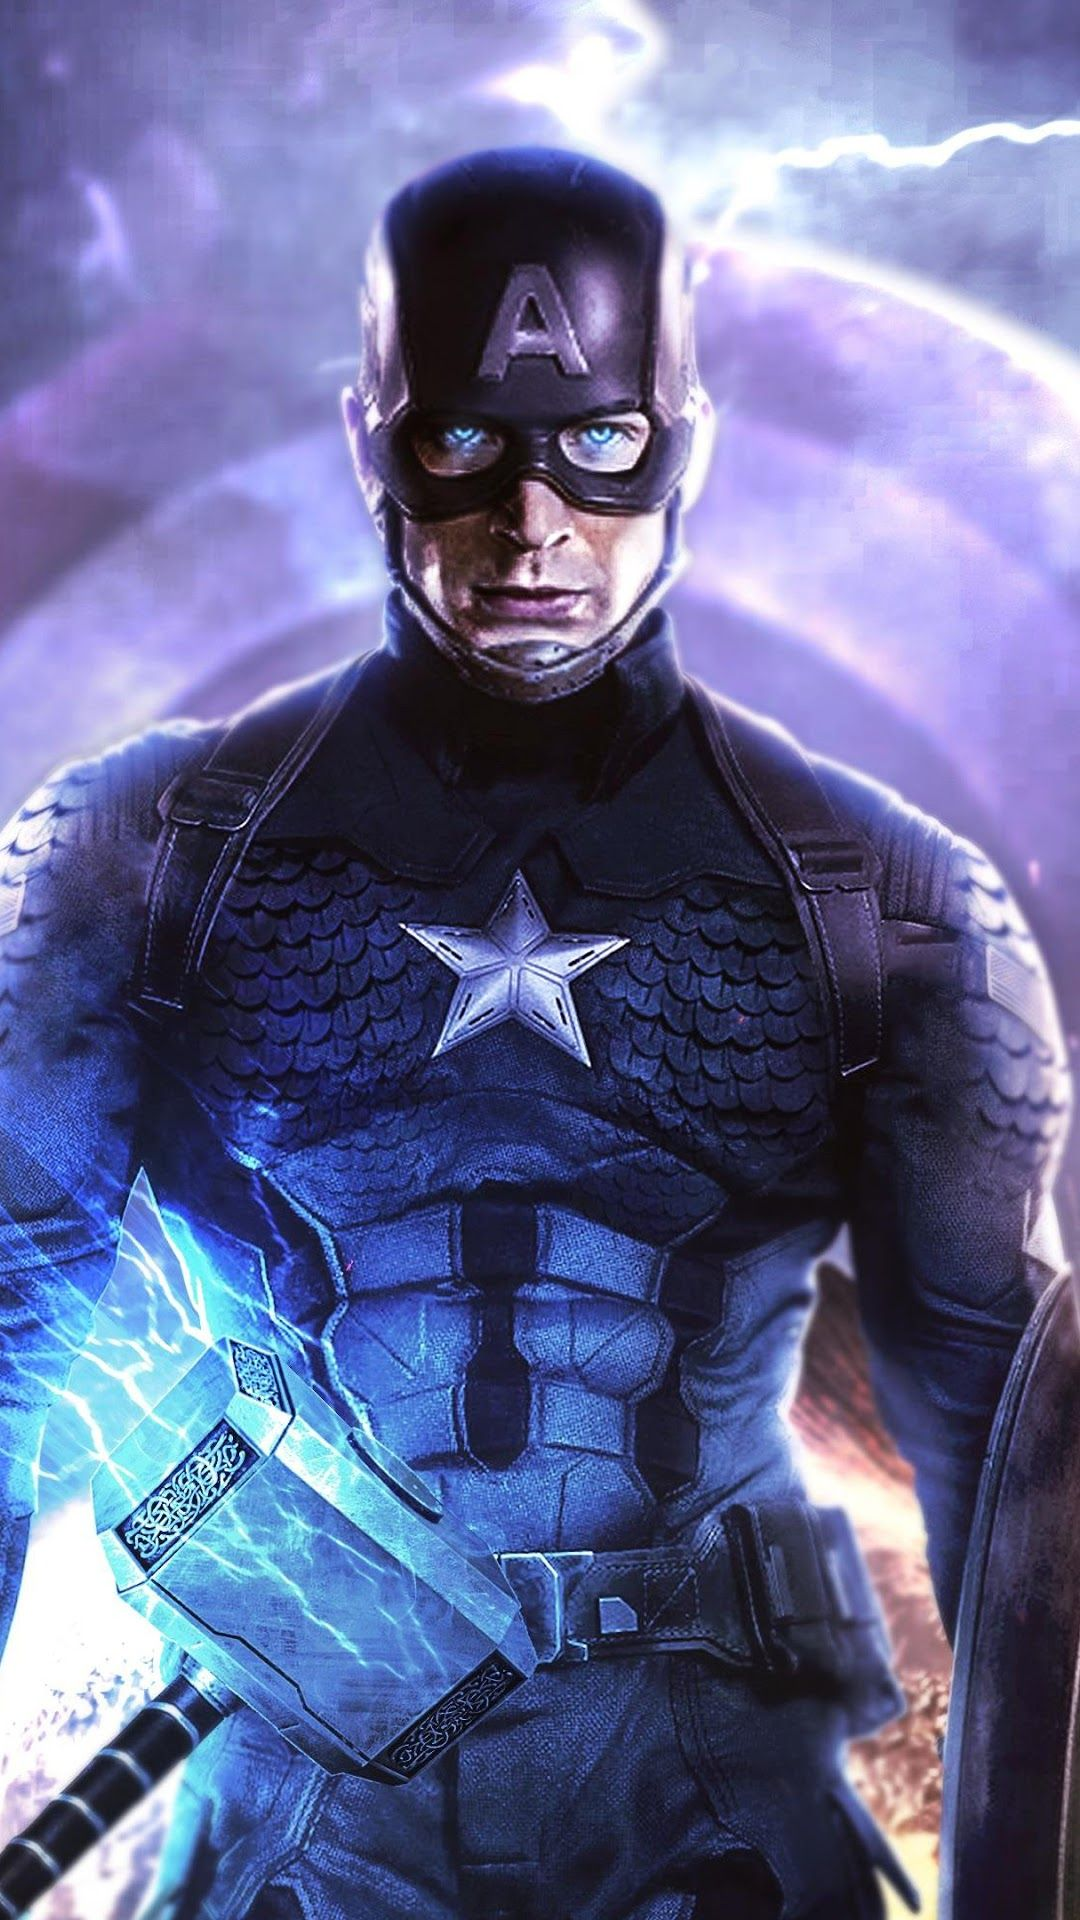 Visit Captain America End Game Wallpaper Mobile On High Definition Wallpaper At Rainbowwallpape Captain America Wallpaper Captain America Movie Captain America